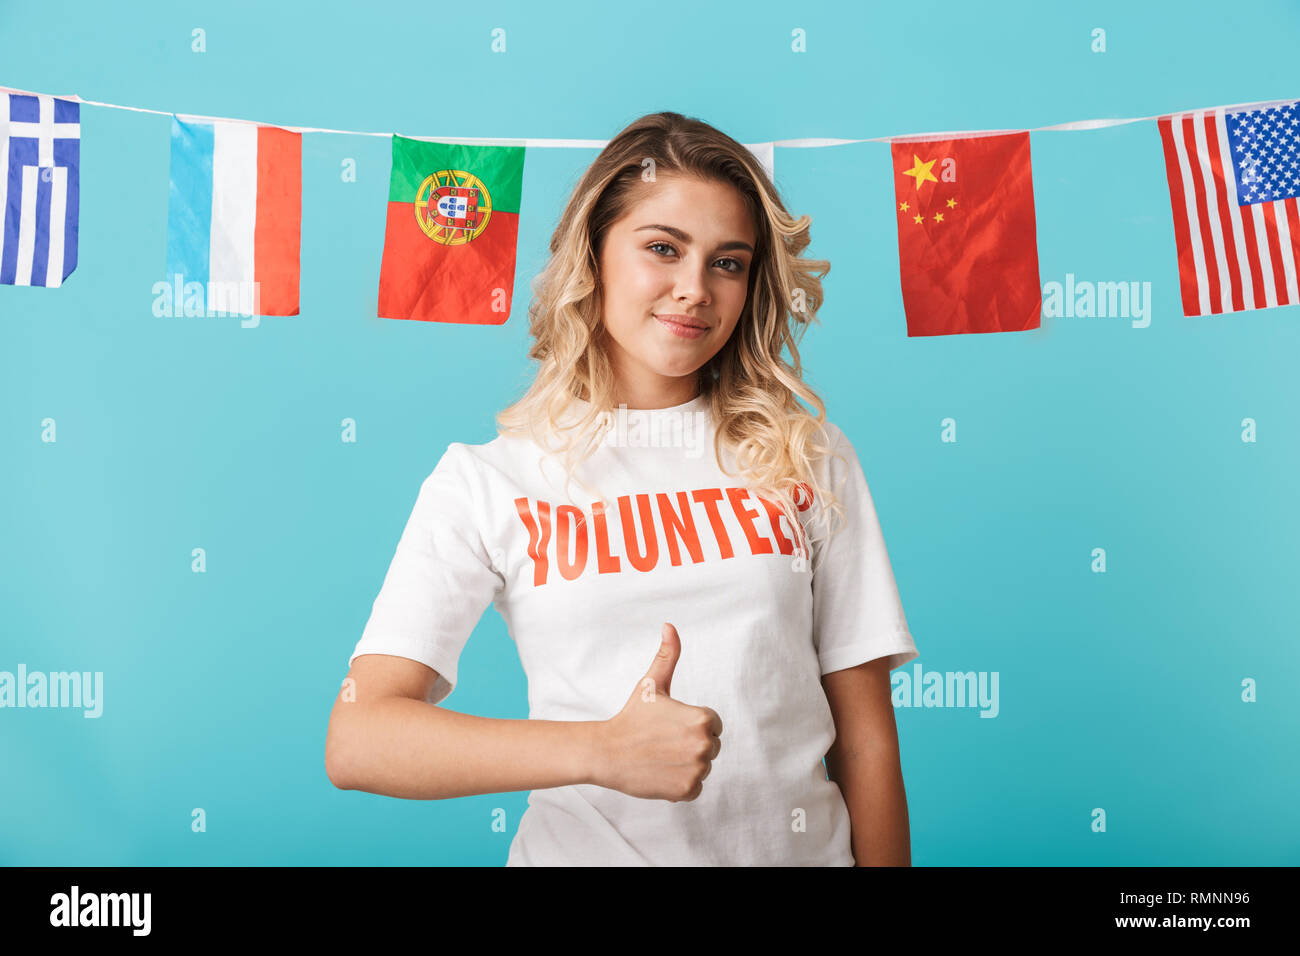 Portrait of a smiling young girl wearing voluteer t-shirt standing isolated over blue background, showing thumbs up - Stock Image